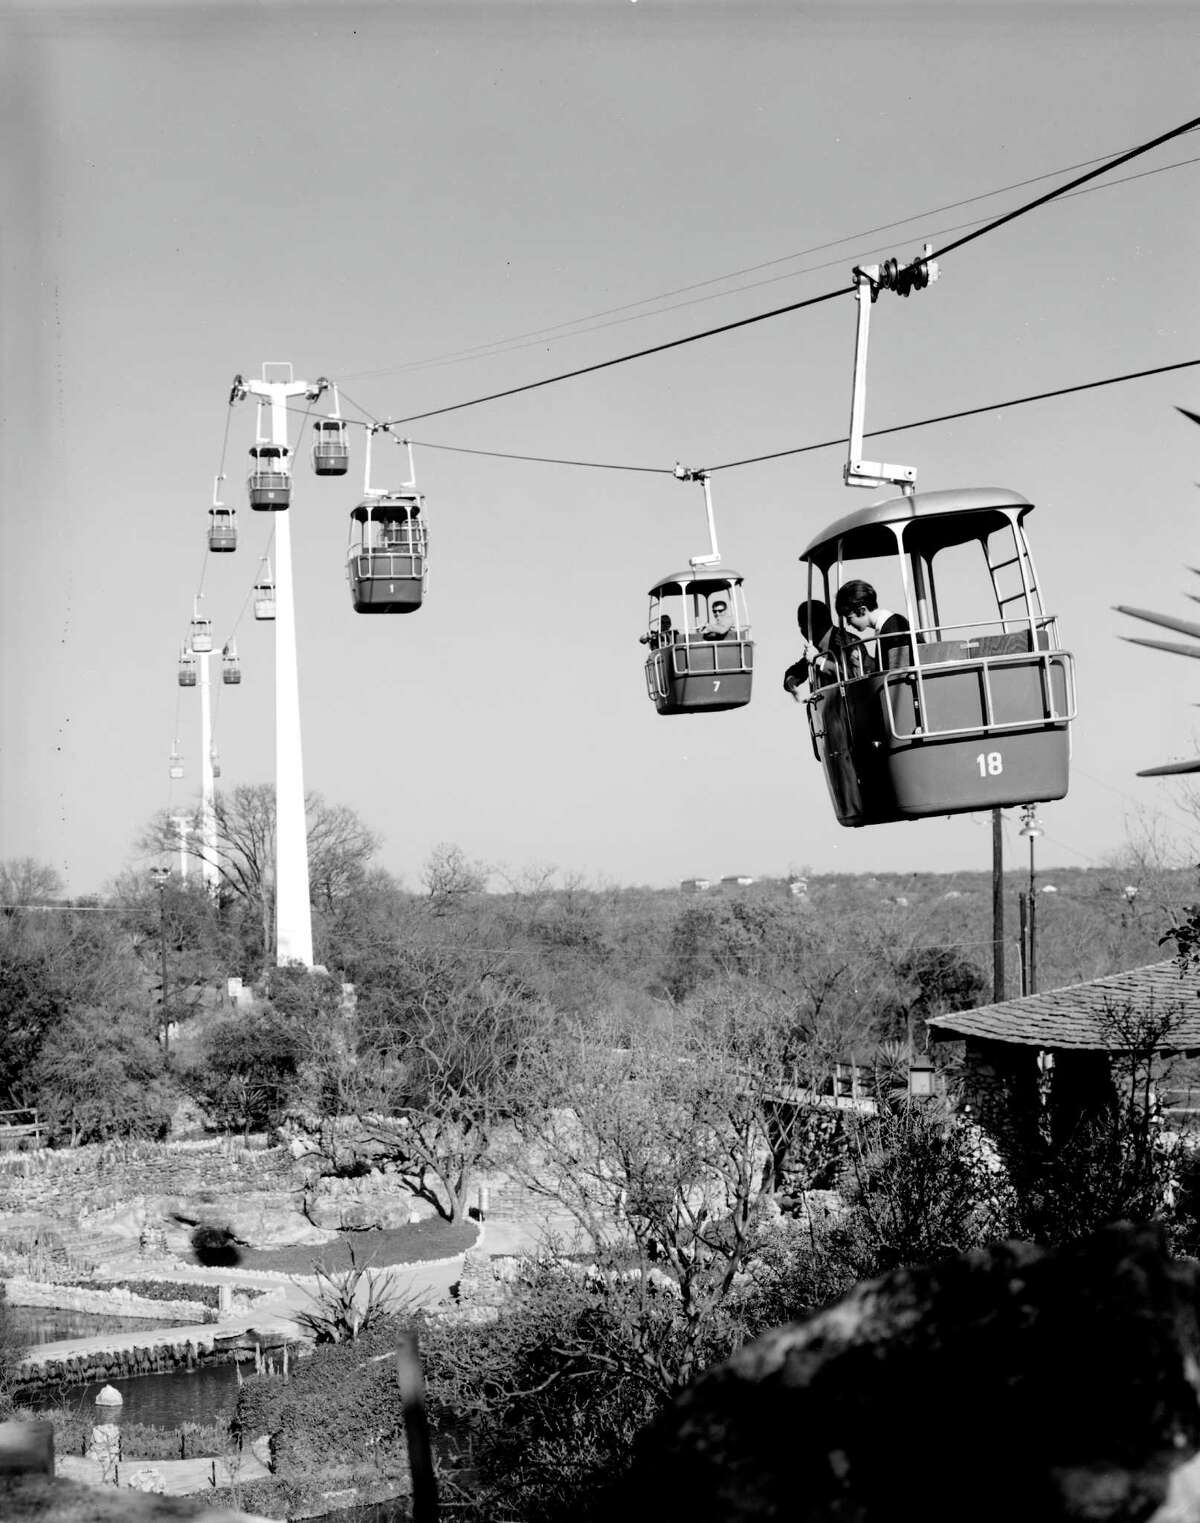 At one time, San Antonians could ride these trams above Brackenridge Park.